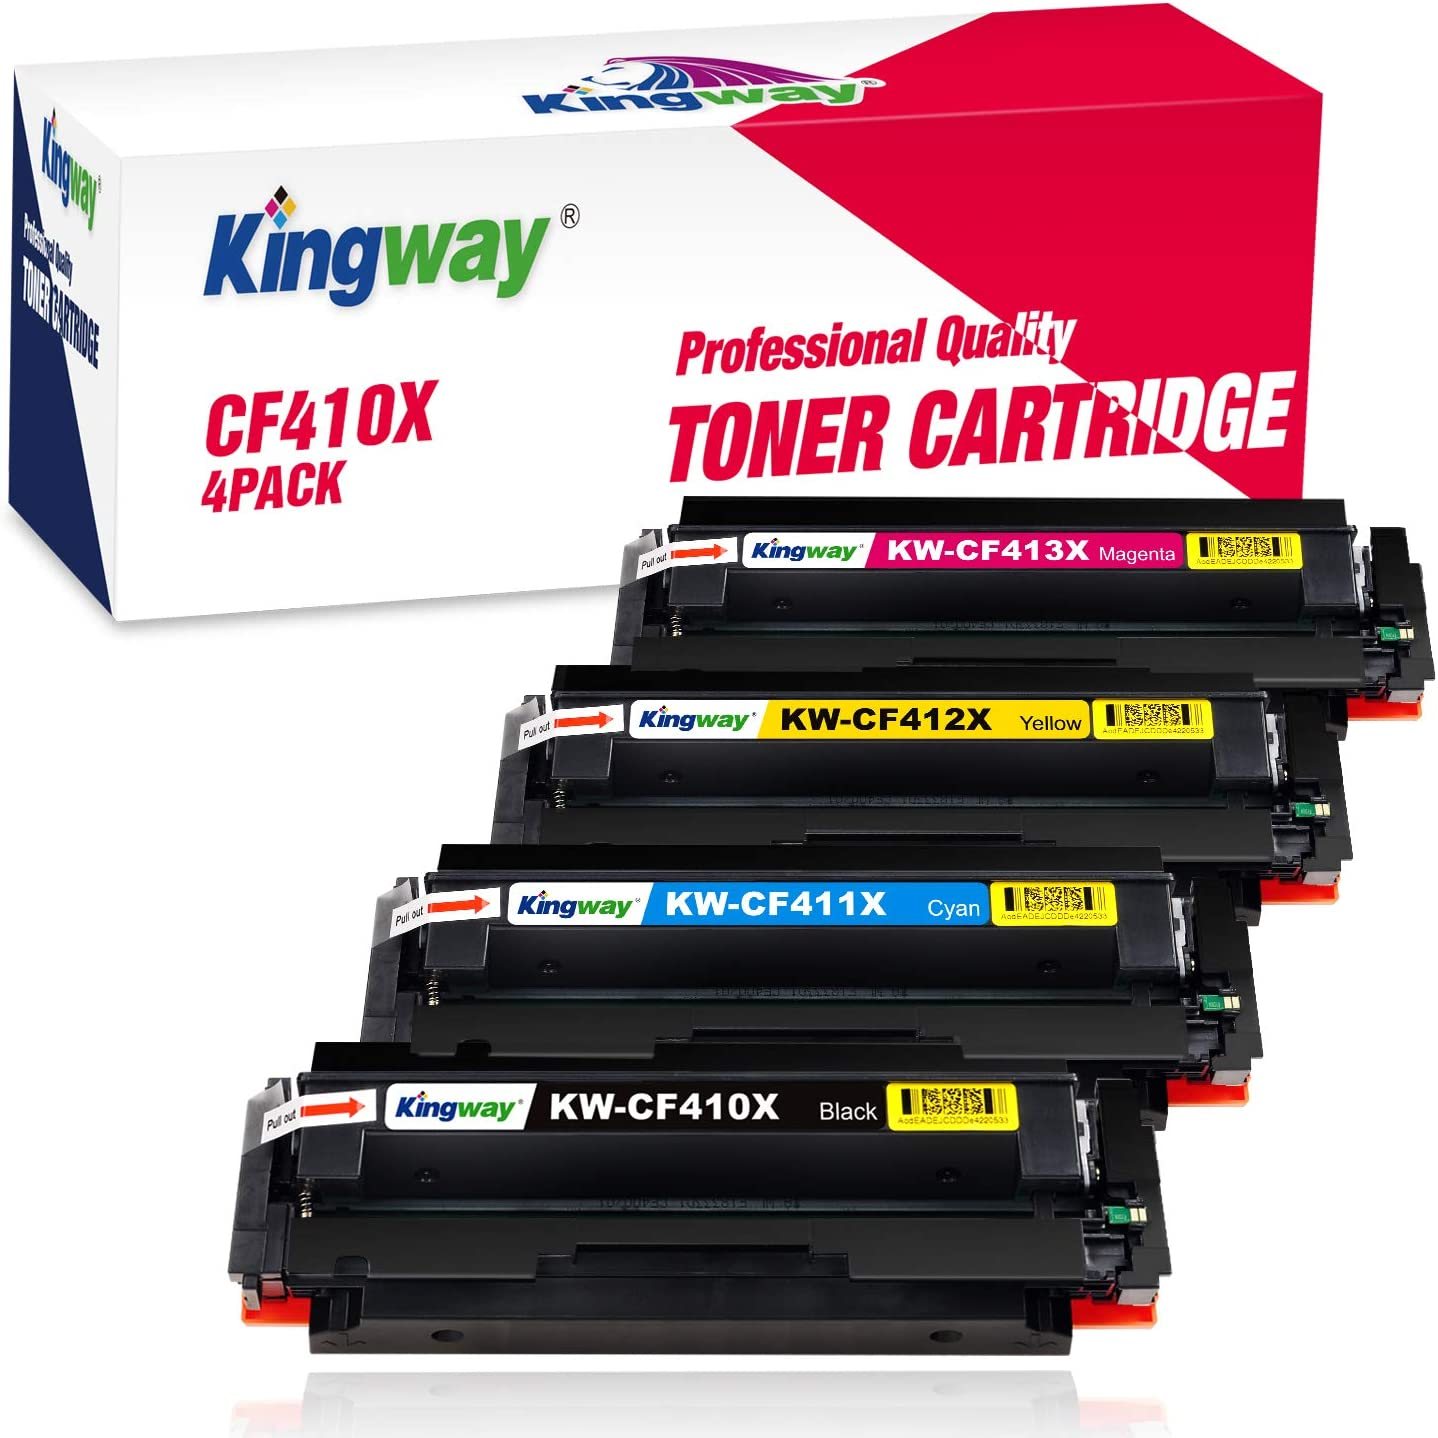 Kingway with Chip Compatible Toner Cartridge Replacement for HP 410A CF410A CF410X CF411X CF412X CF413X Work with Laserjet Pro MFP M477fdw M477fnw M477fdn M452dw M452dn M452nw M377dw (4 Pack)